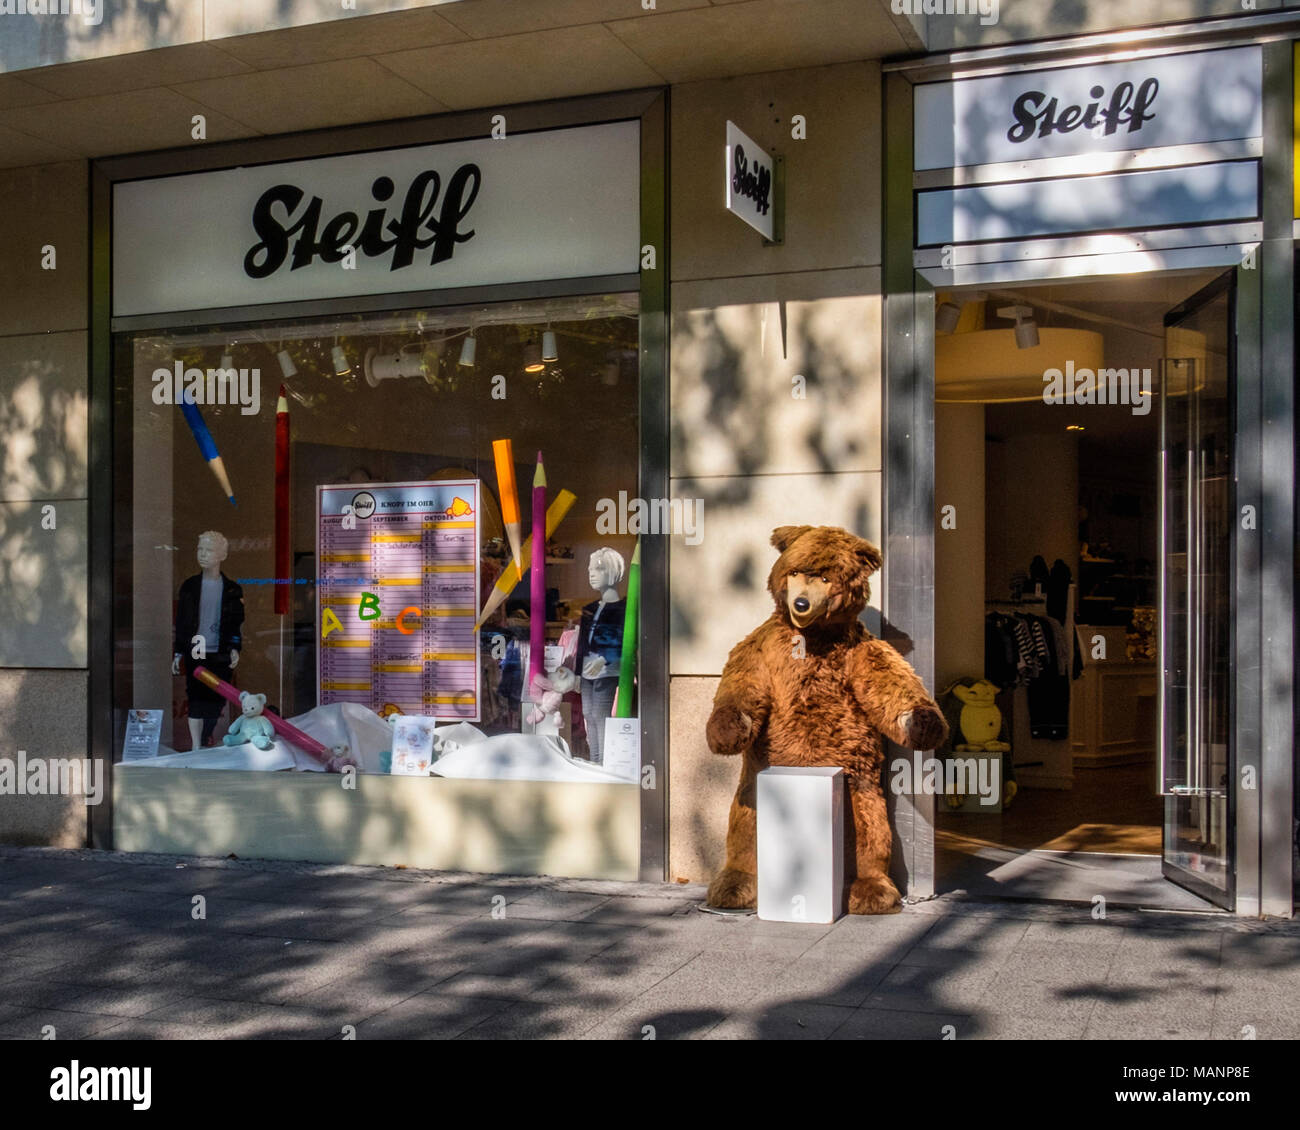 Berlin, Charlottenburg. Steiff teddy bear shop in Kurfürstendamm.Hand-made collectible toys with numbered certificate attached to ear - Stock Image